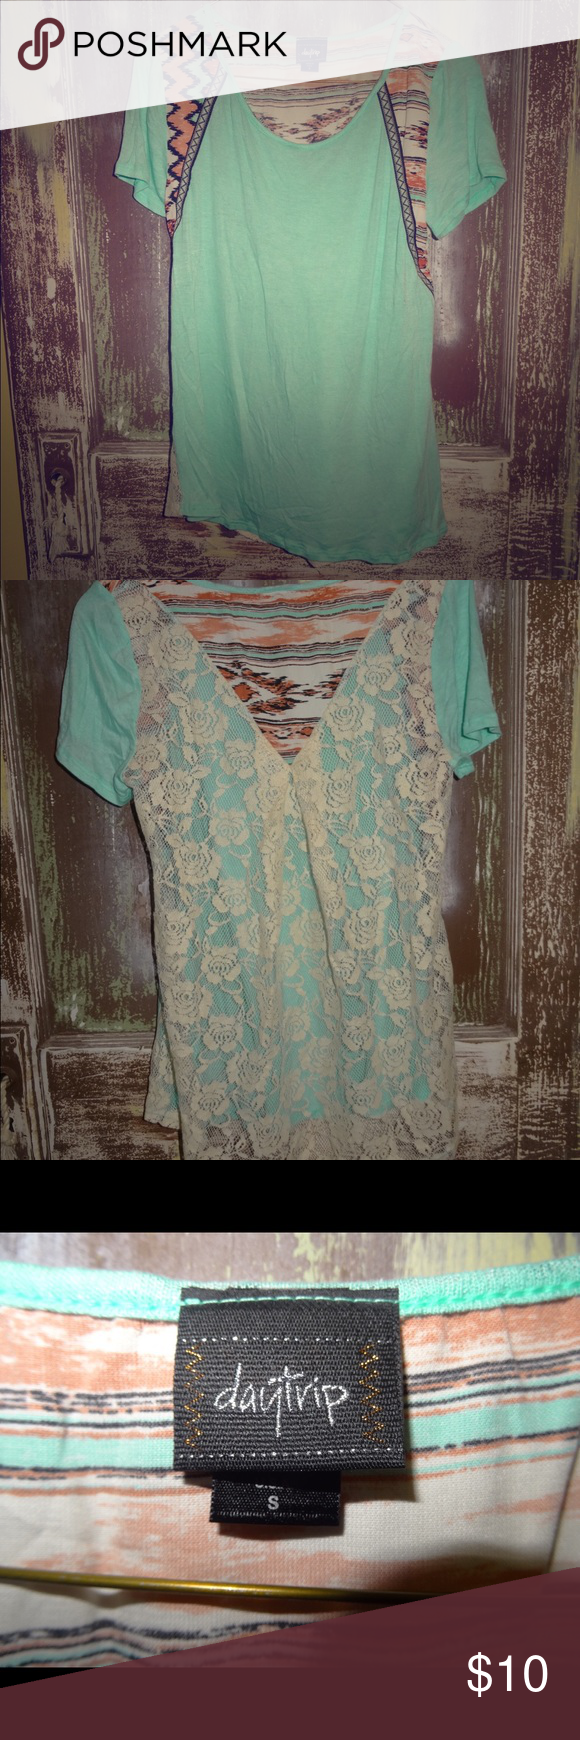 NWOT Daytrip Mint Green Turquoise Aztec Print Lace NWOT Daytrip Mint Green Turquoise Aztec Print Lace Back Boho Blouse Top Small Daytrip Tops Blouses